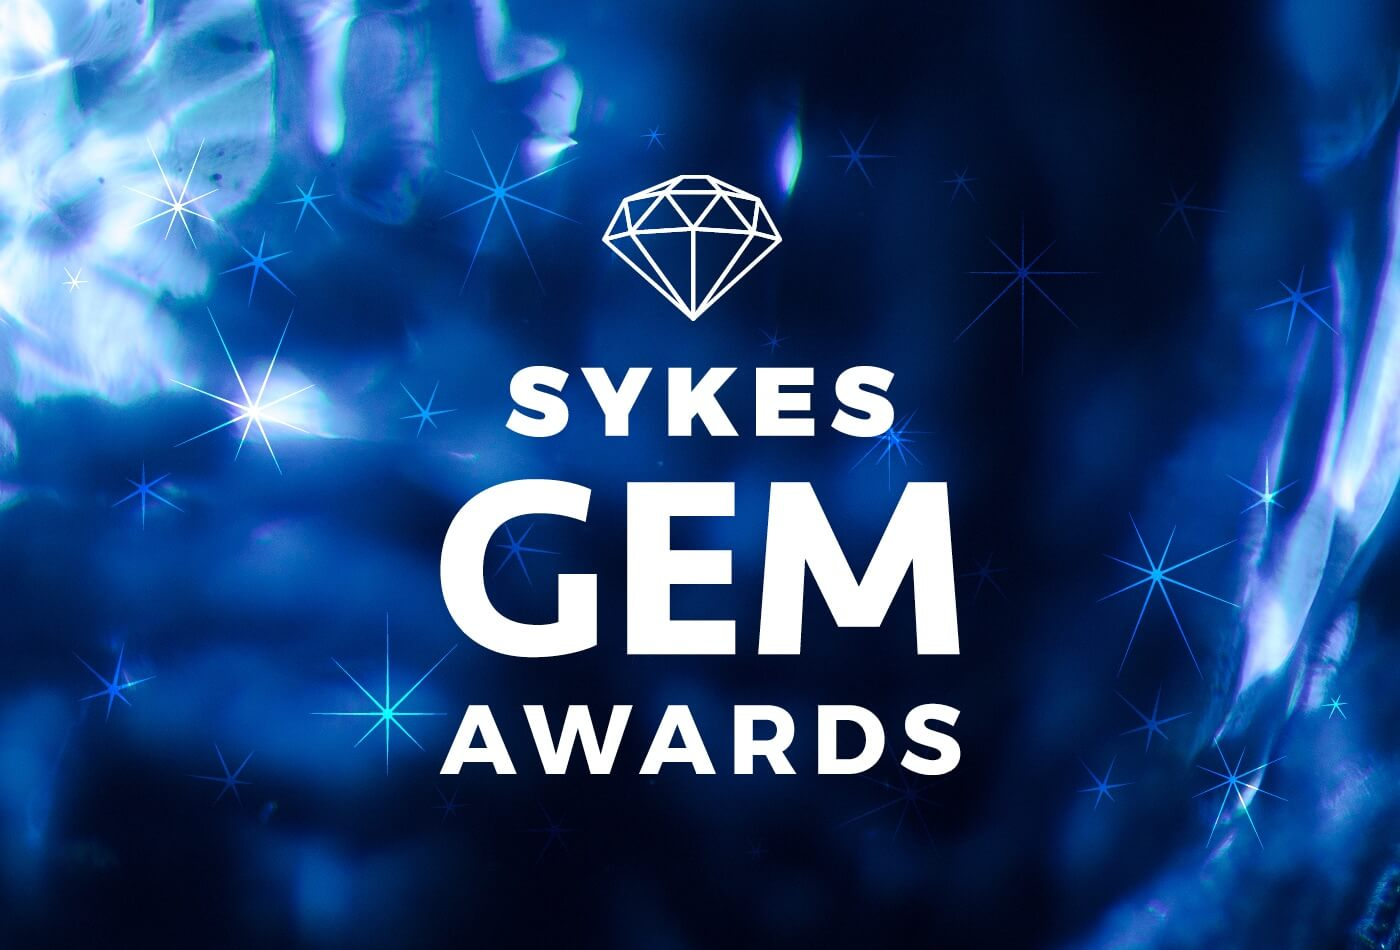 Sykes Gems Awards